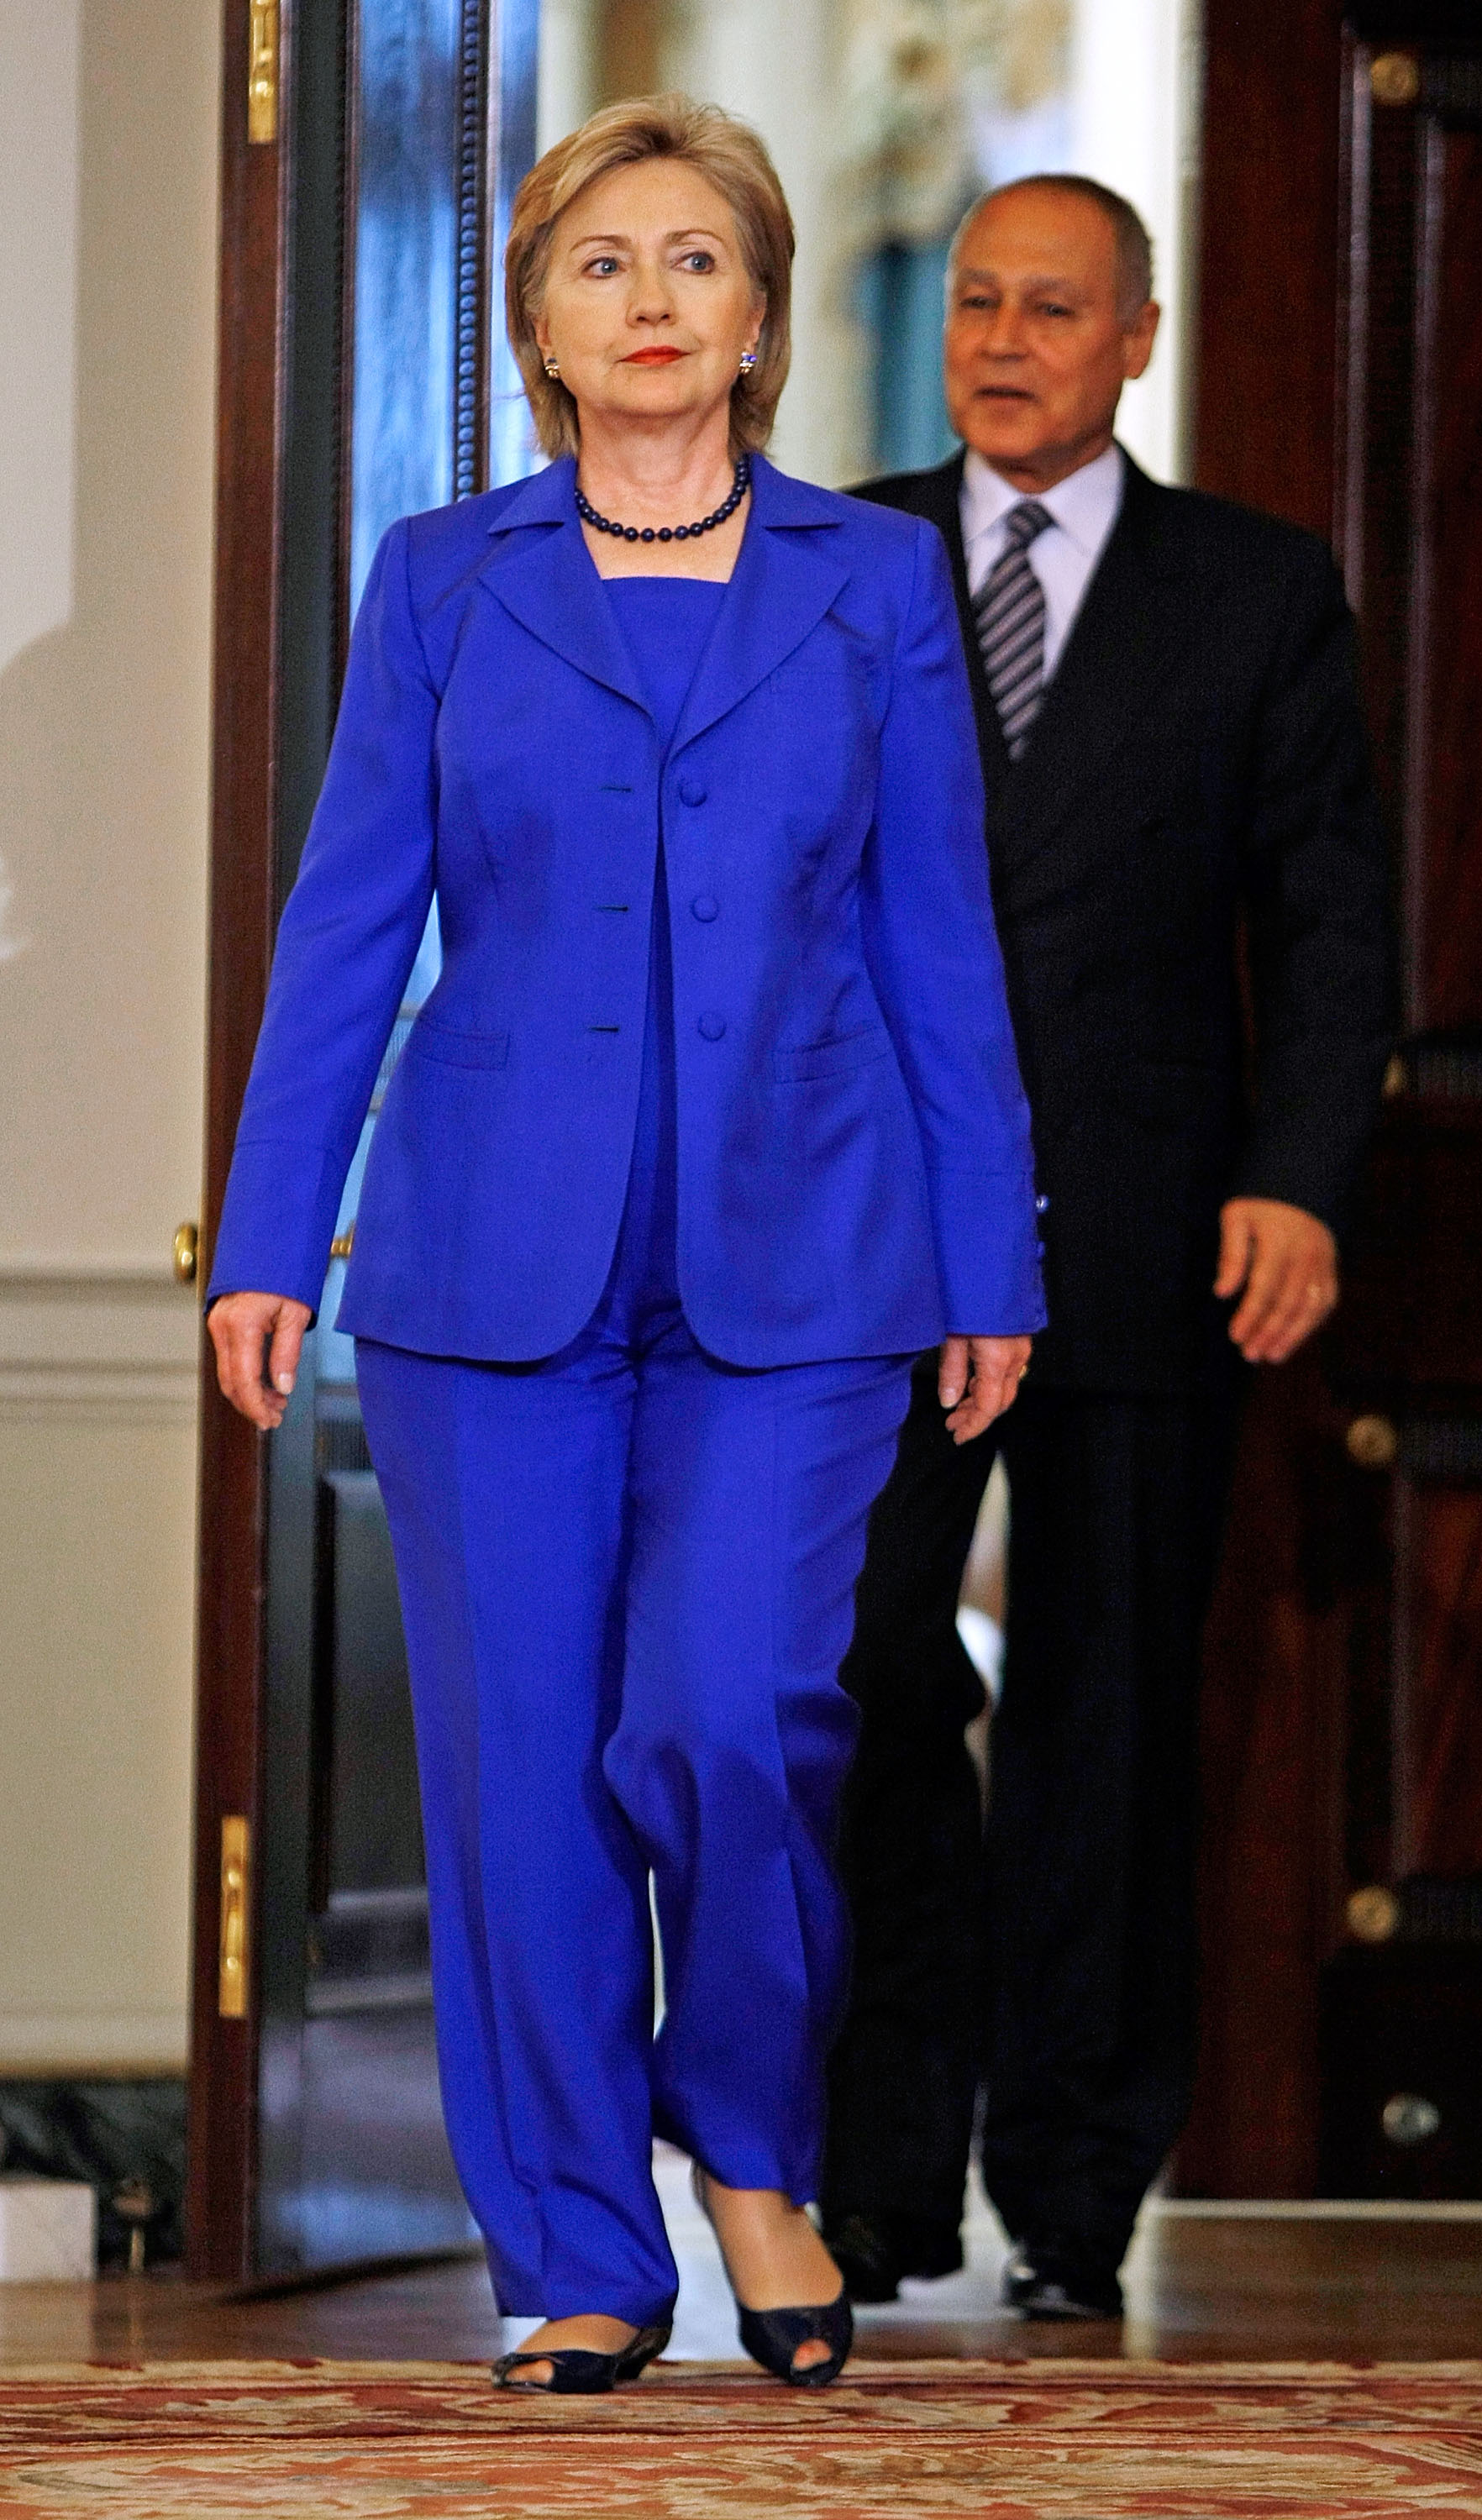 Hillary Clinton Meets With Egyptian Foreign Minister